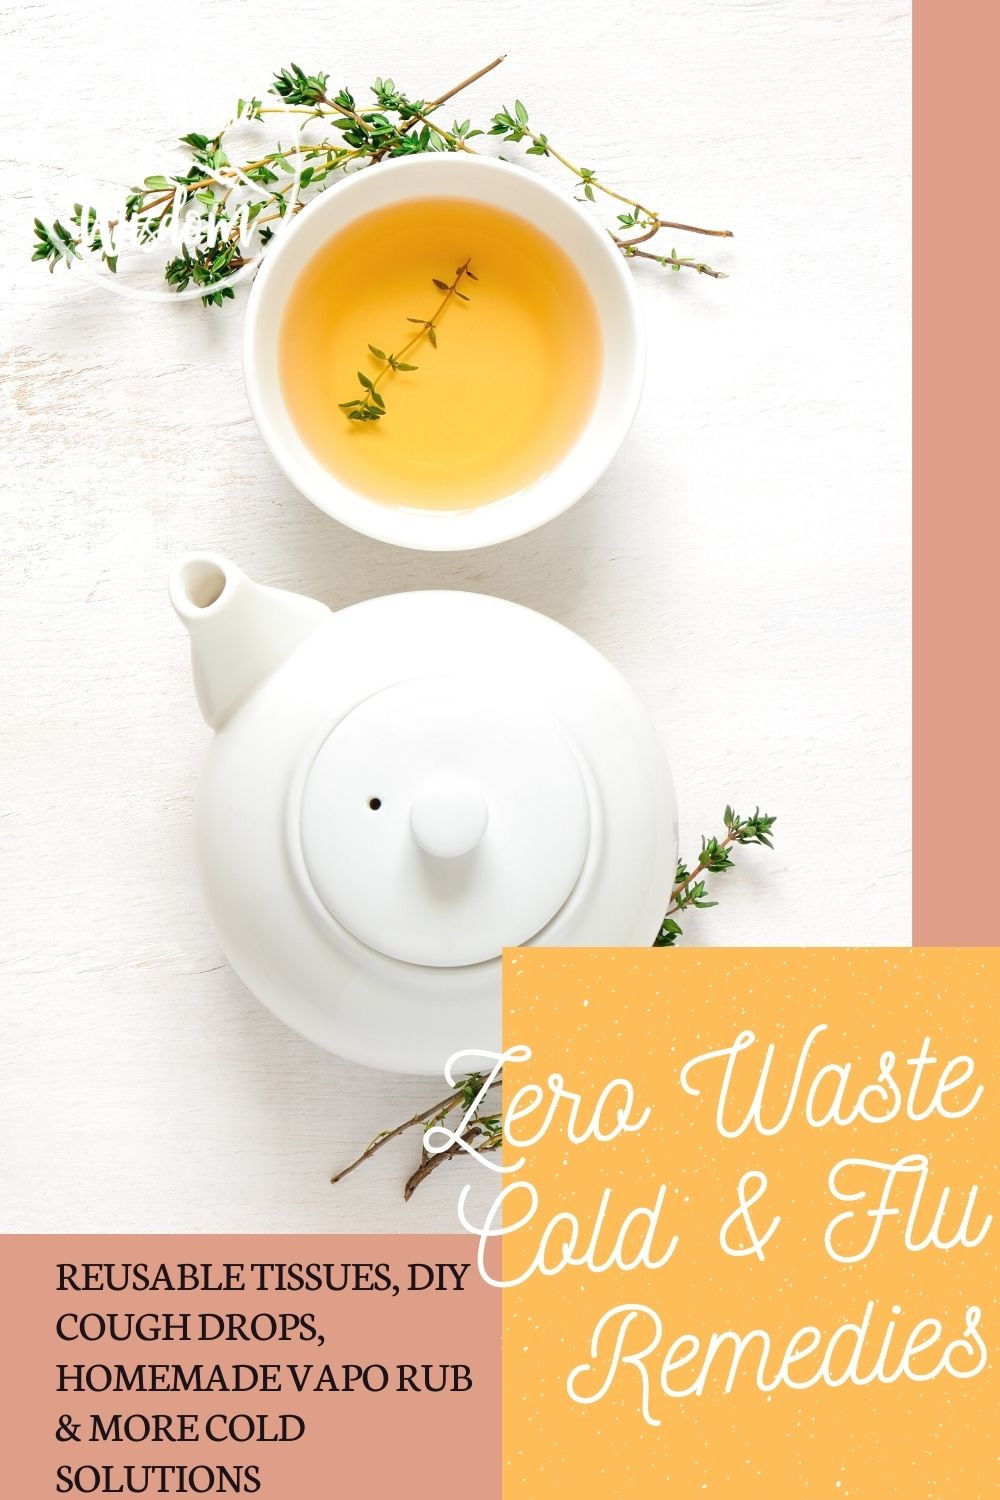 Zero Waste Cold & Flu Remedies Pinterest Pin Reusable tissues, DIY cough drops, homemade vapo rub & more cold solutions